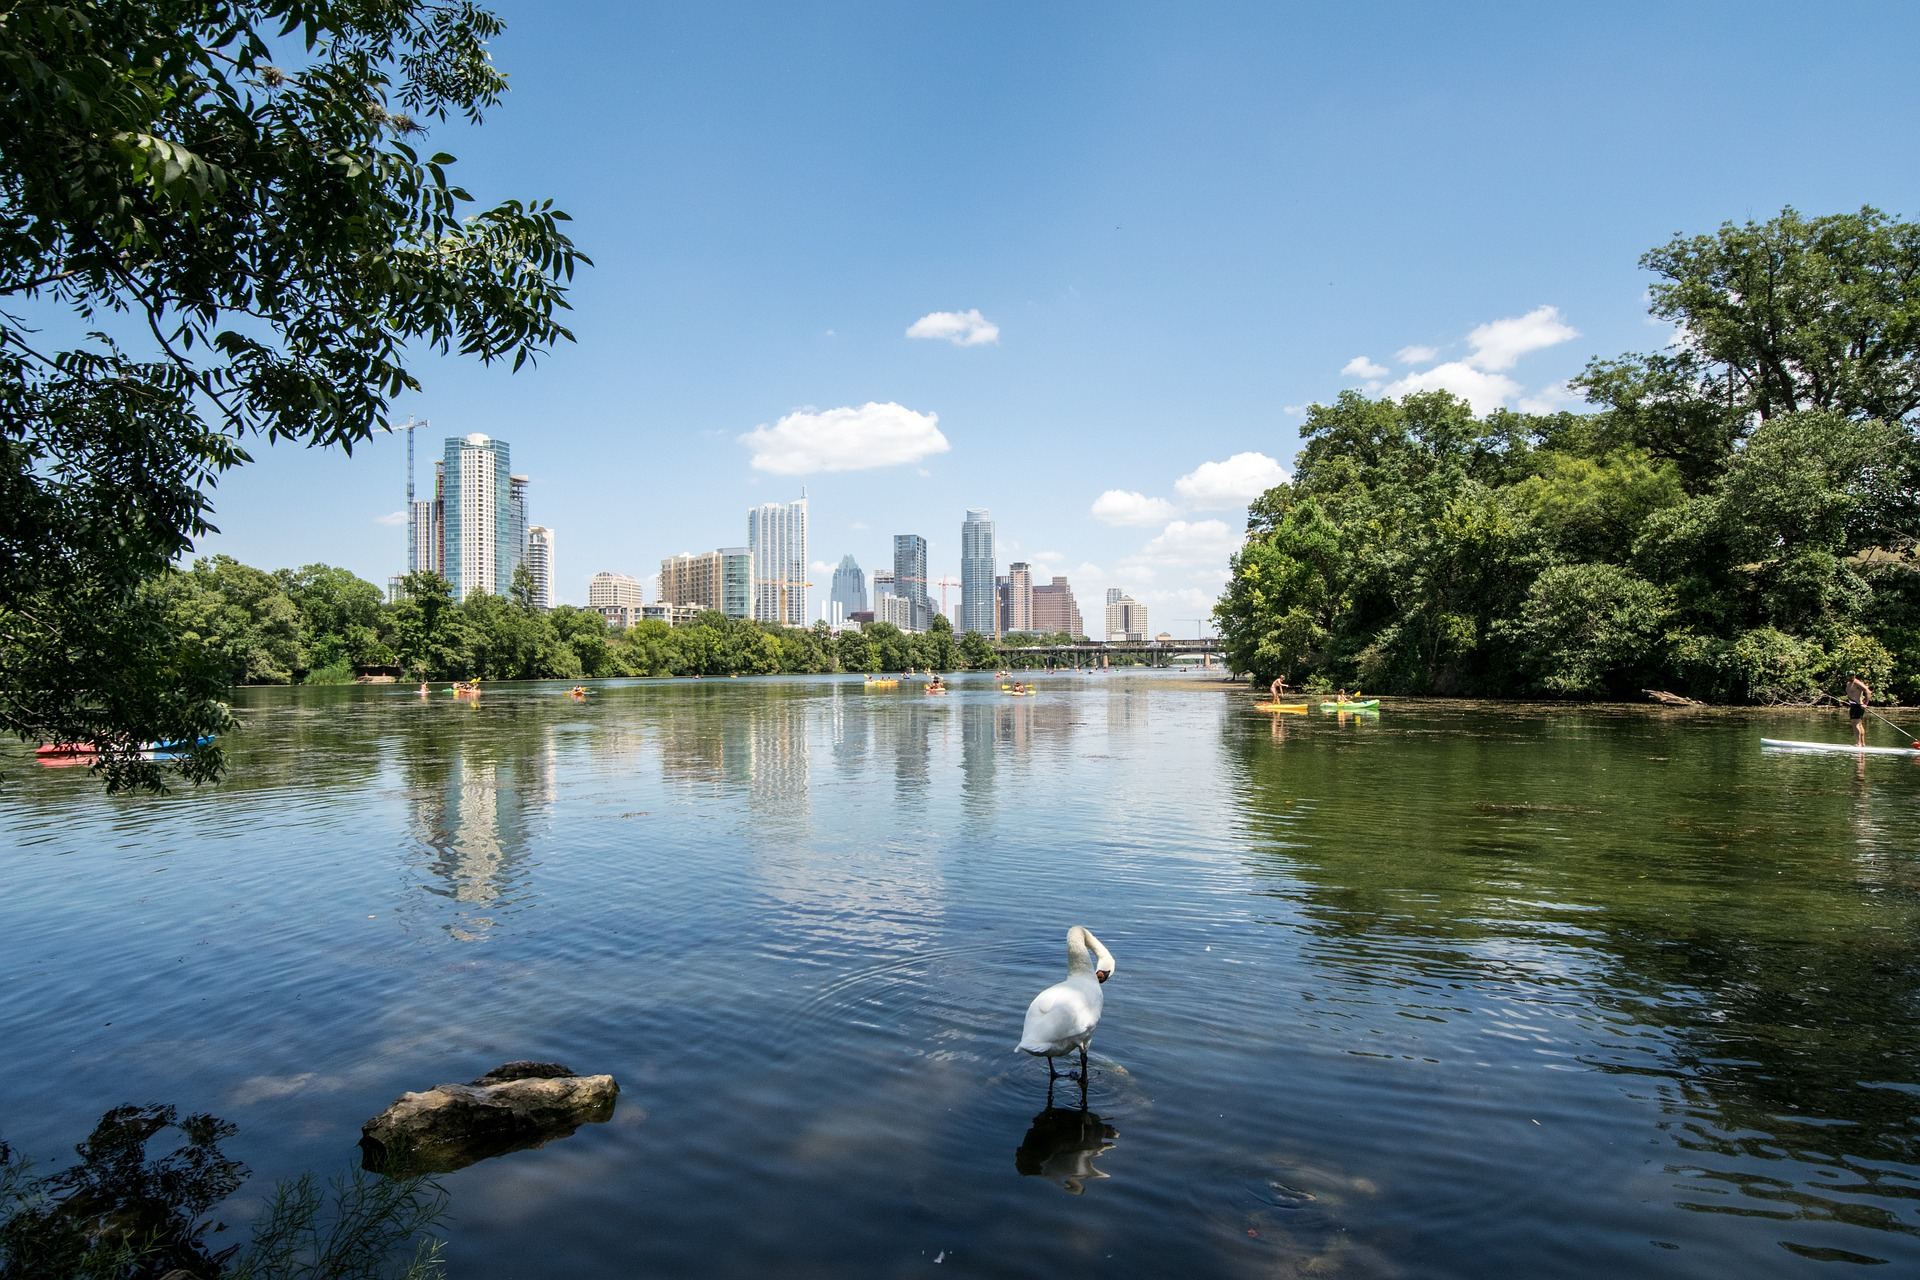 Image of the Austin skyline taken from across a lake with a swan on it |TAB Bank